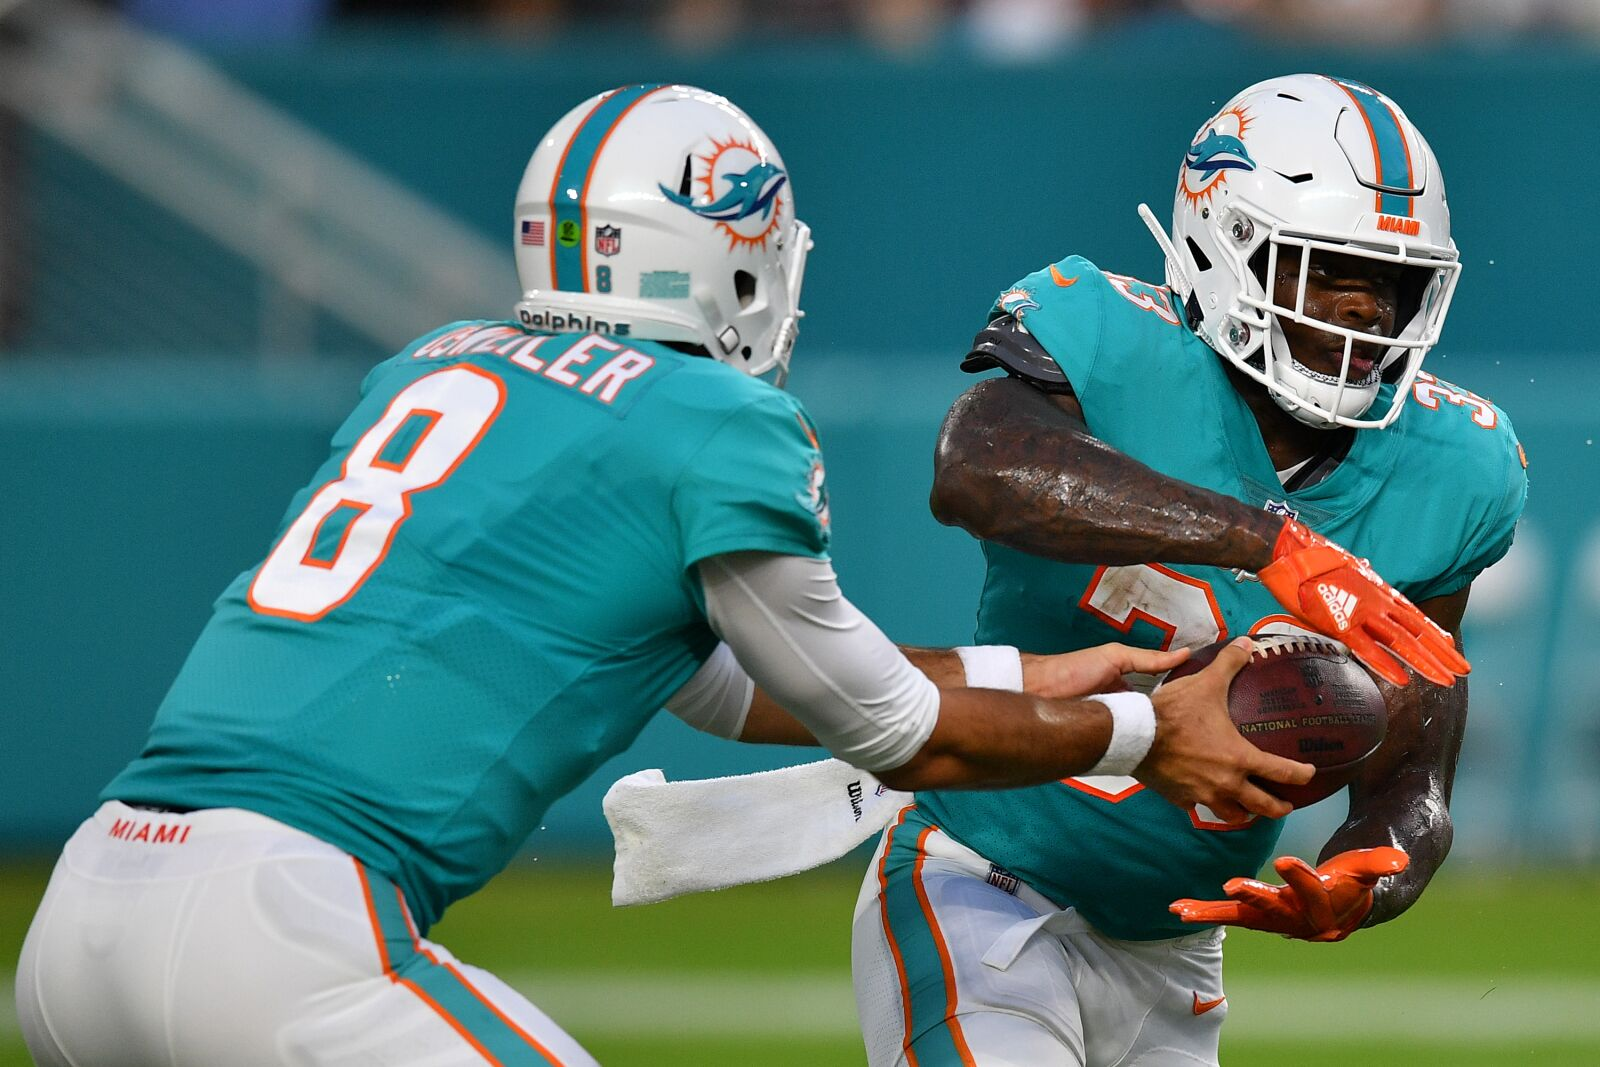 a5d49268b Dolphins should cut ties with Brock Osweiler now